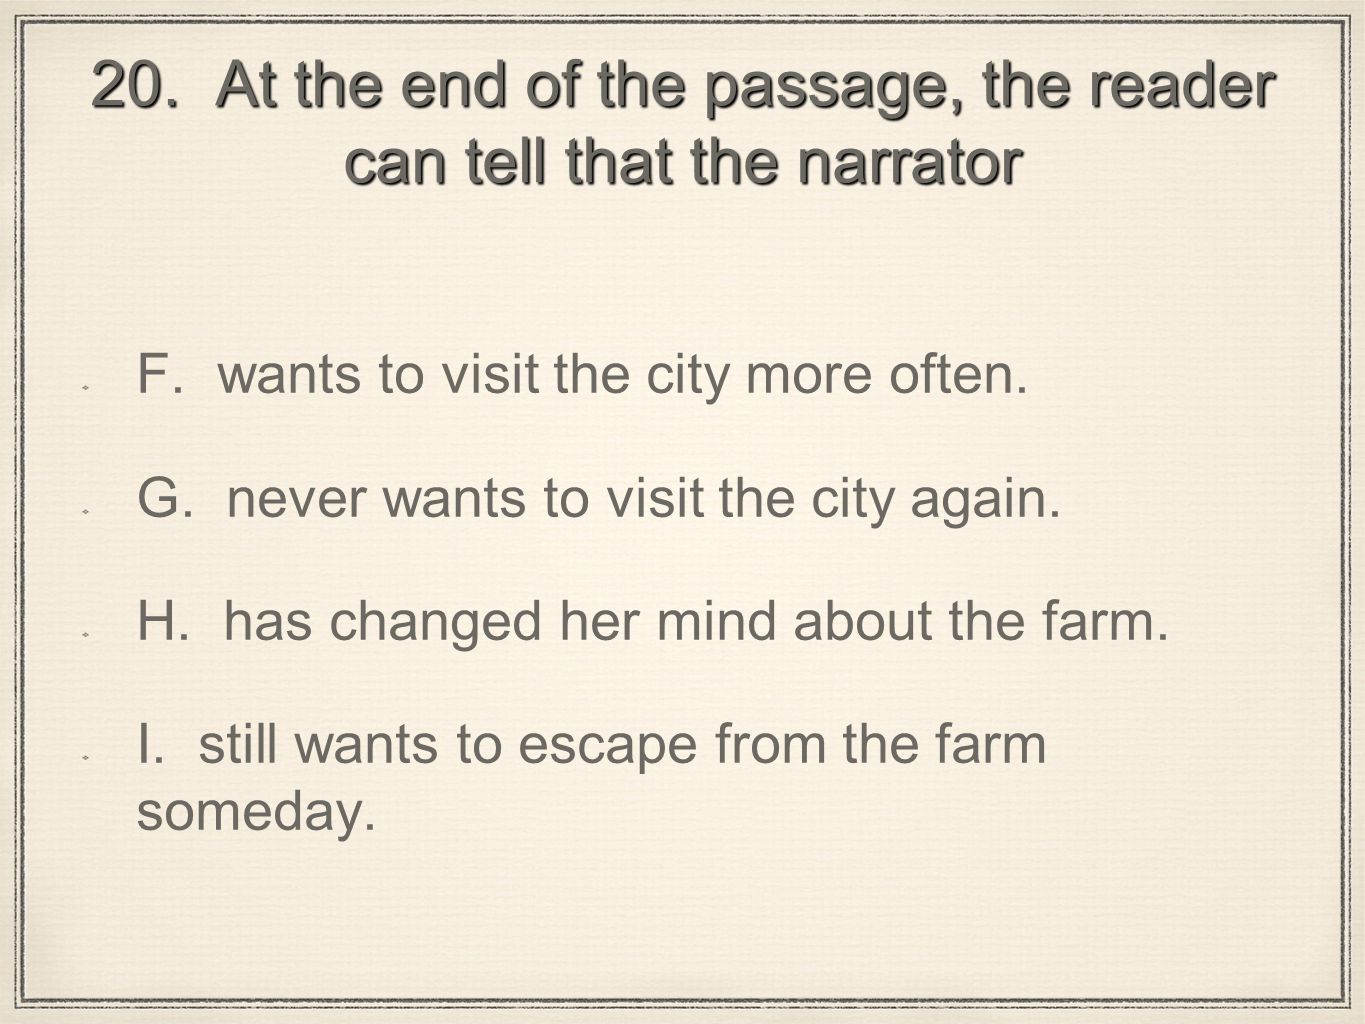 20. At the end of the passage, the reader can tell that the narrator